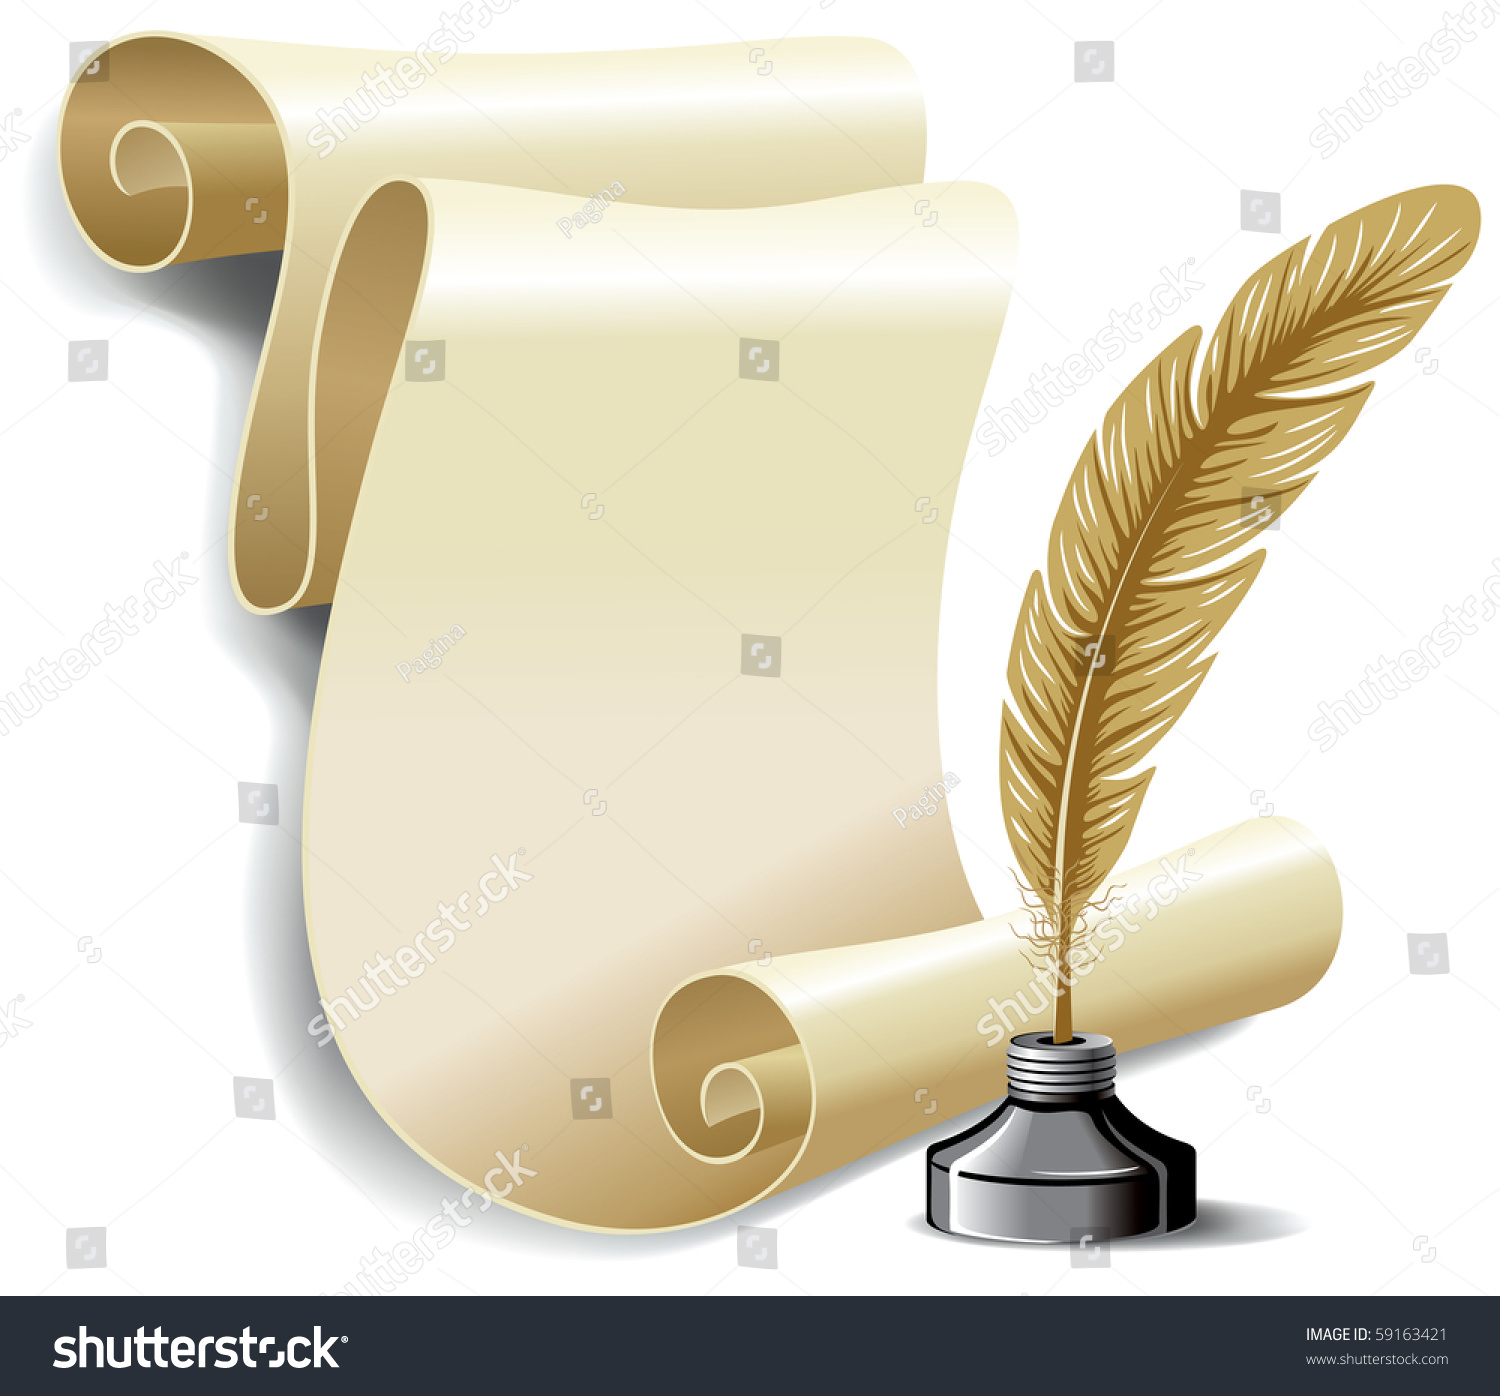 Roll Of Old Paper And Feather In The Inkwell. Vector ...   1500 x 1396 jpeg 325kB